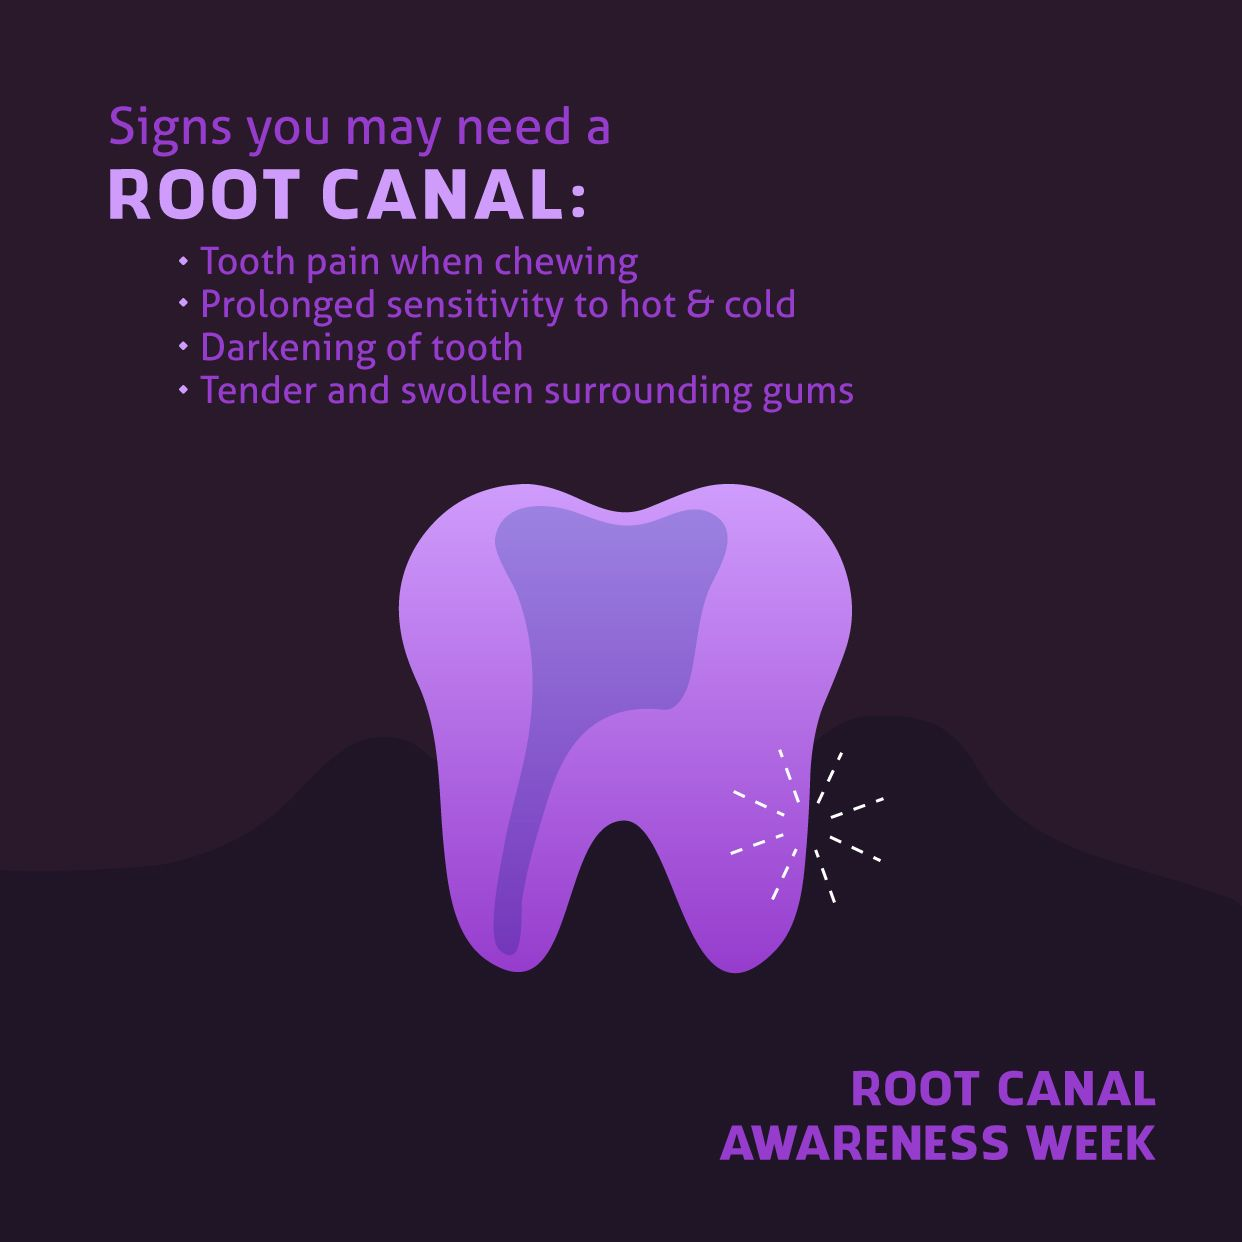 DON'T KNOW IF YOU need a root canal? These signs may just